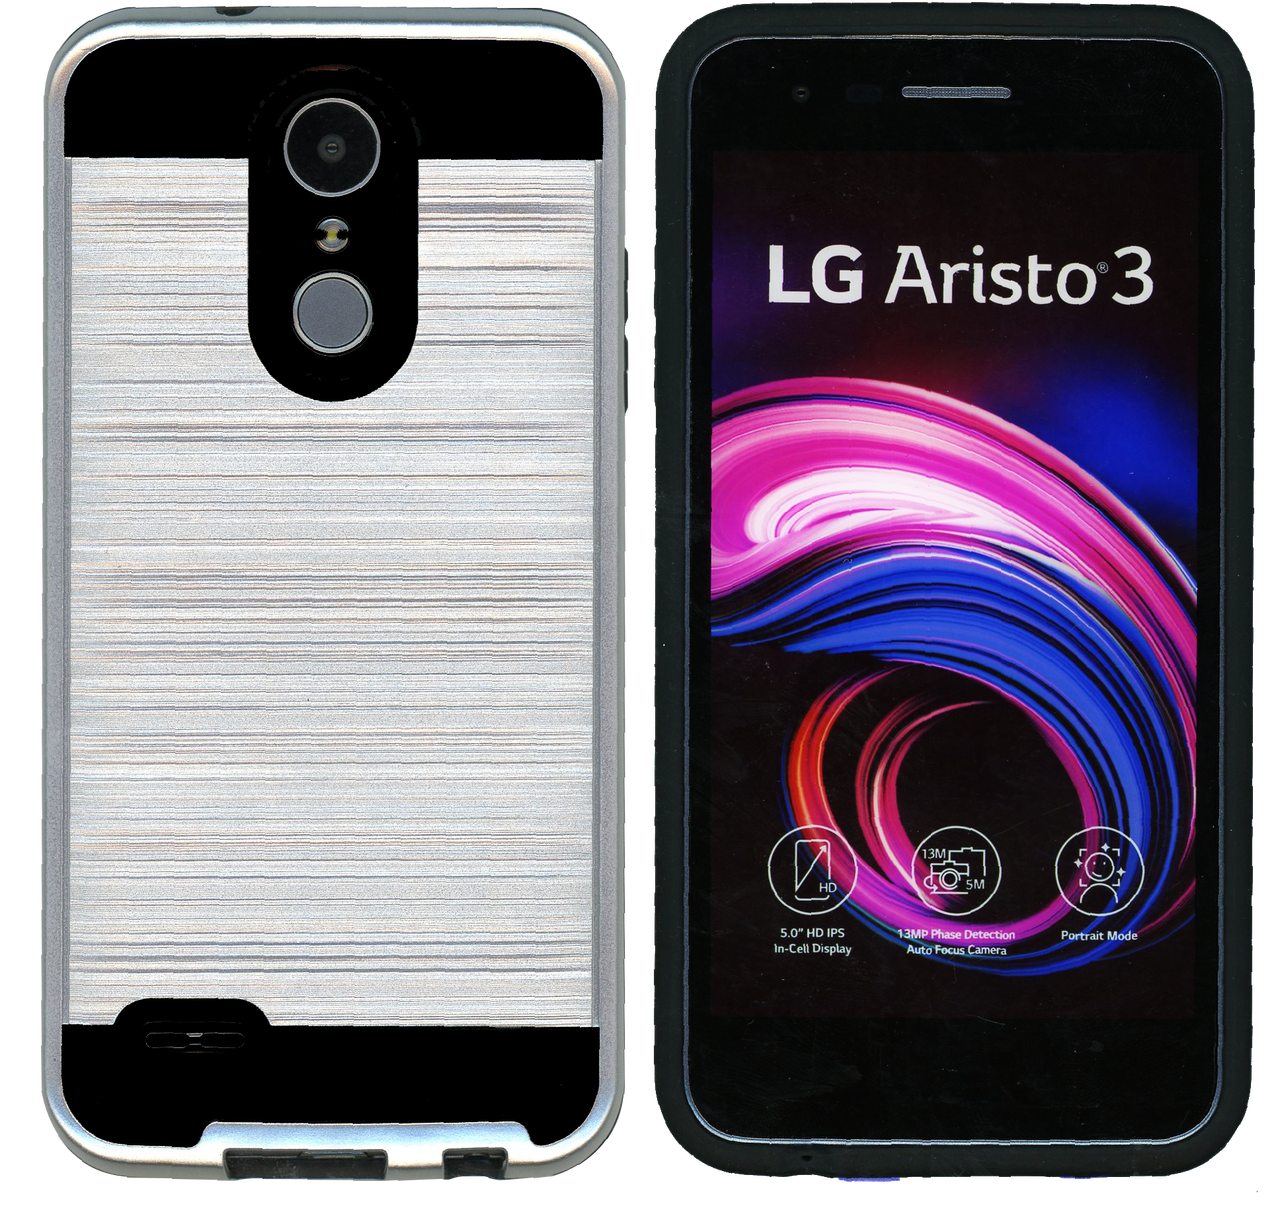 Lg Aristo 3 3 2 Empire Mm Slim Dura Metal Finish Gray World Cellular Find images, tech specs and reviews. world cellular